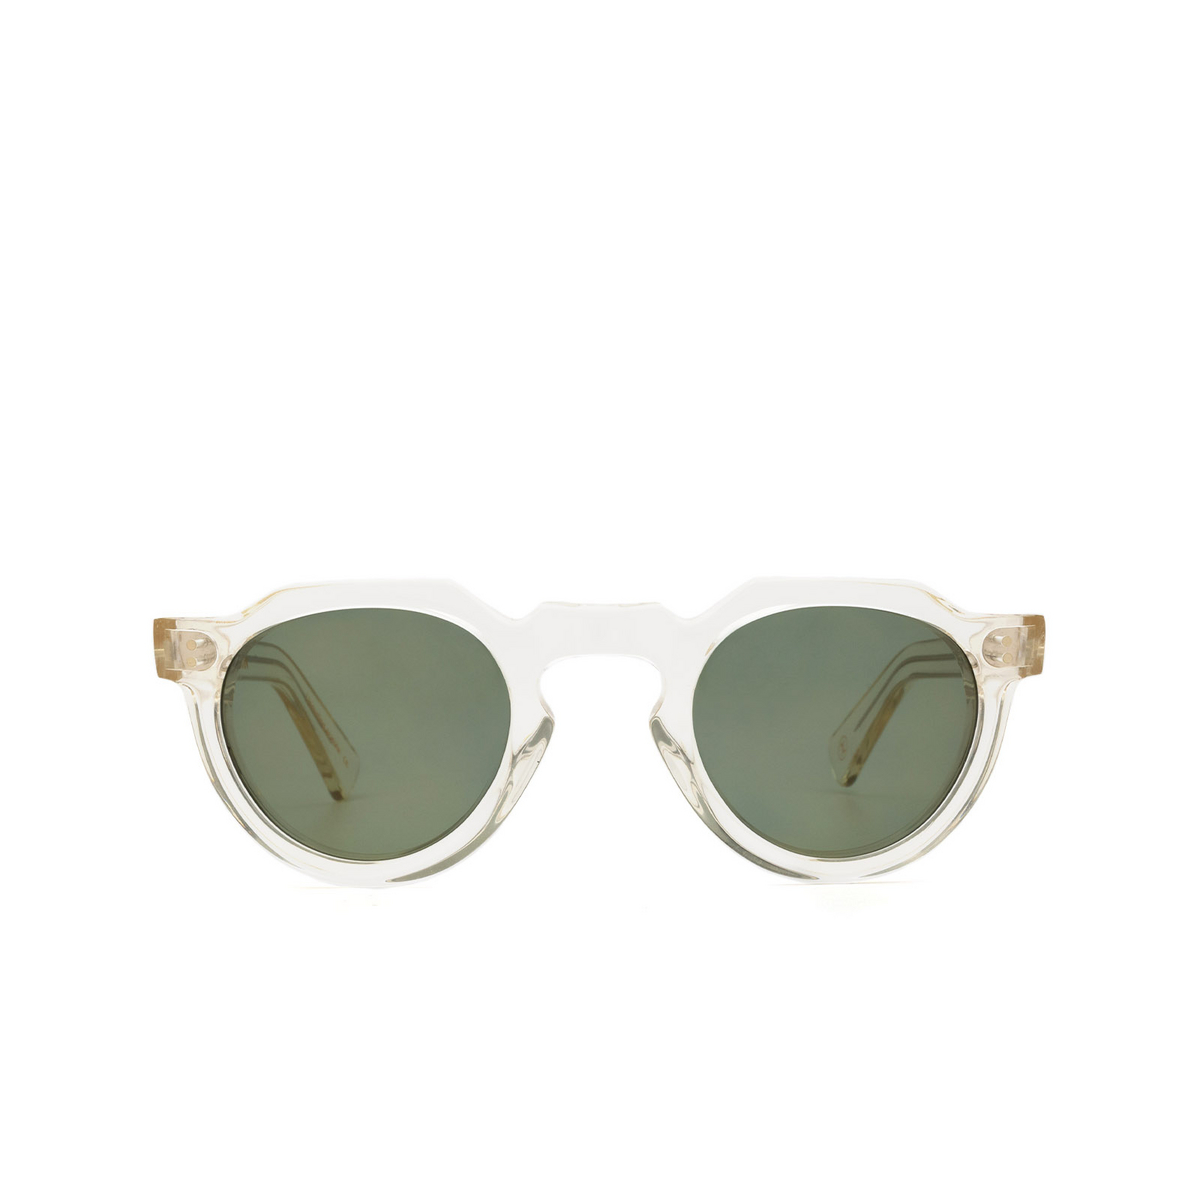 Lesca® Irregular Sunglasses: Crown Panto X Mia Burton color 21 - GROUNDED GREEN - front view.